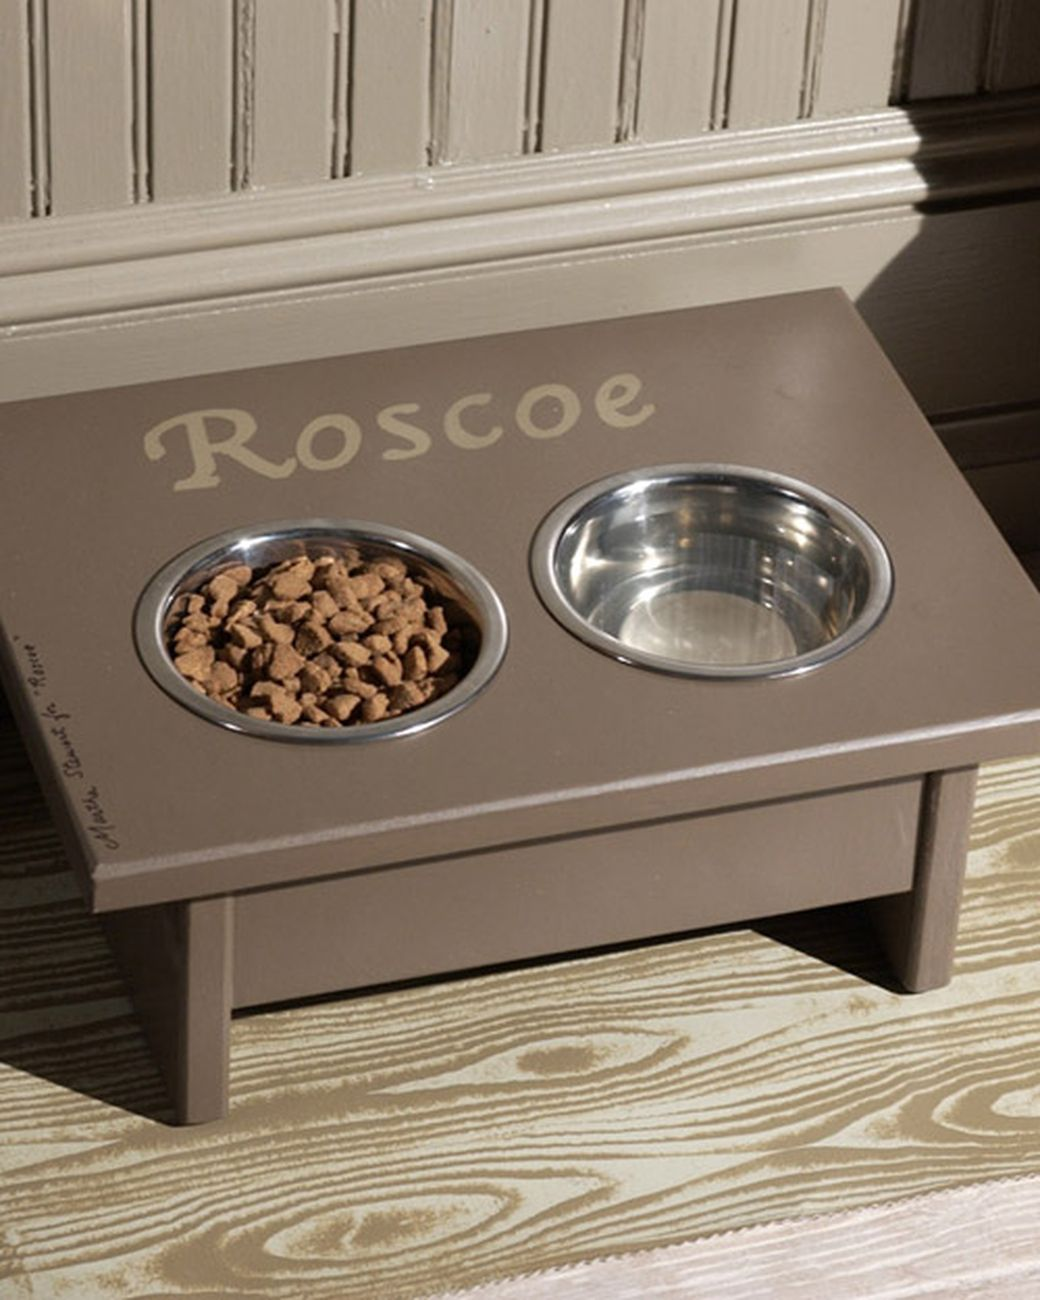 This easy-to-build dog feeding station raises your pet's food and water to a more comfortable level and keeps your floor neat.